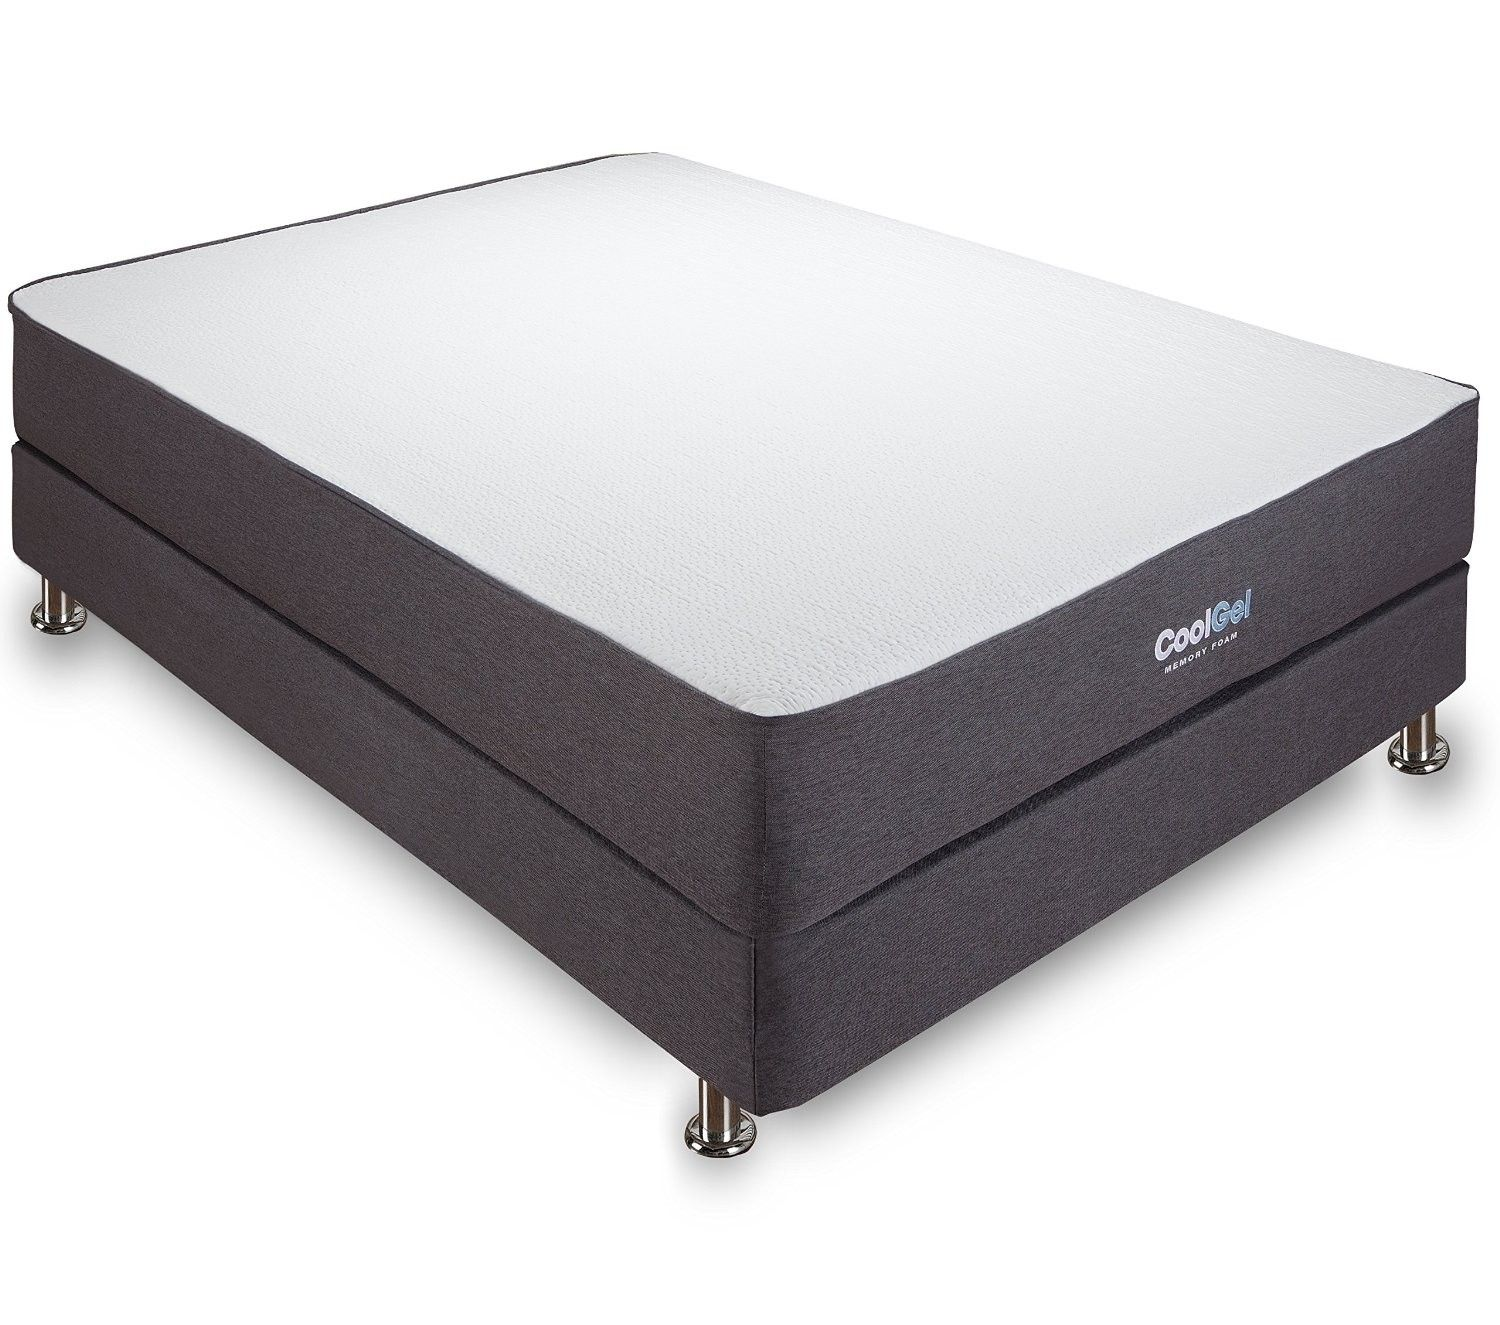 Iso Pedic 10 5 Cool Gel Memory Foam Mattress By Dormia